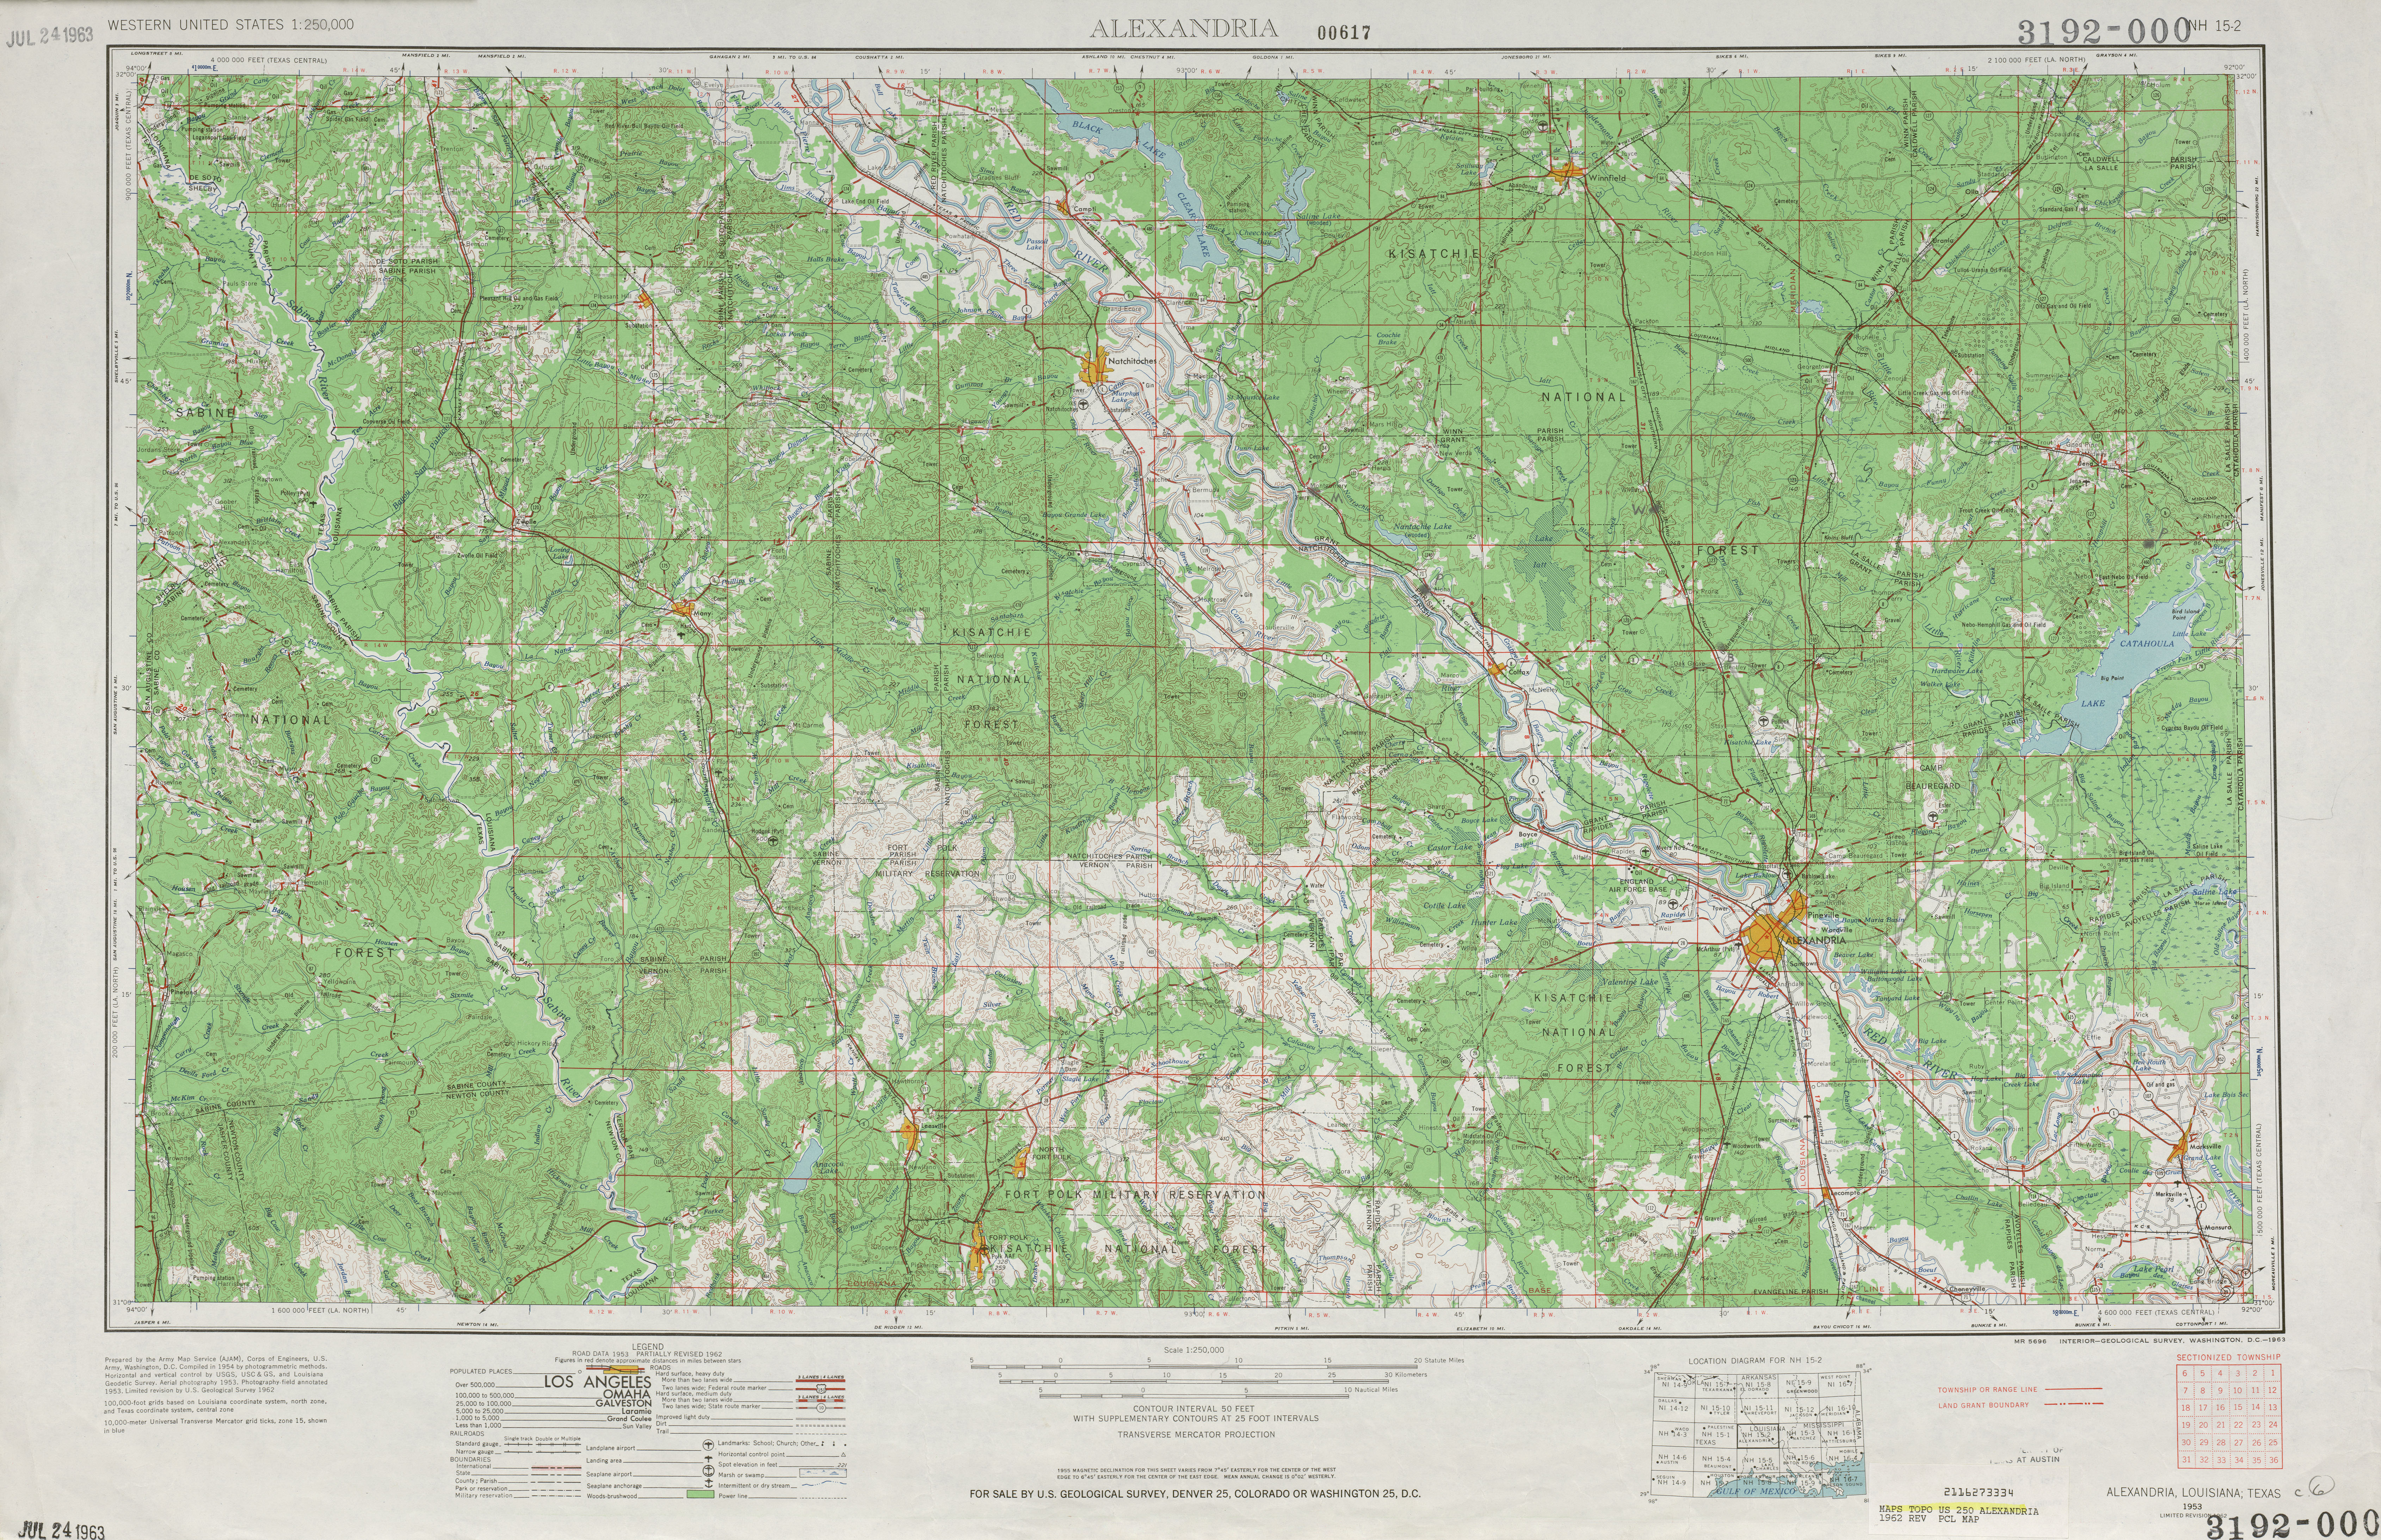 United States Topographic Maps 1:250,000 - Perry-Castañeda Map ...